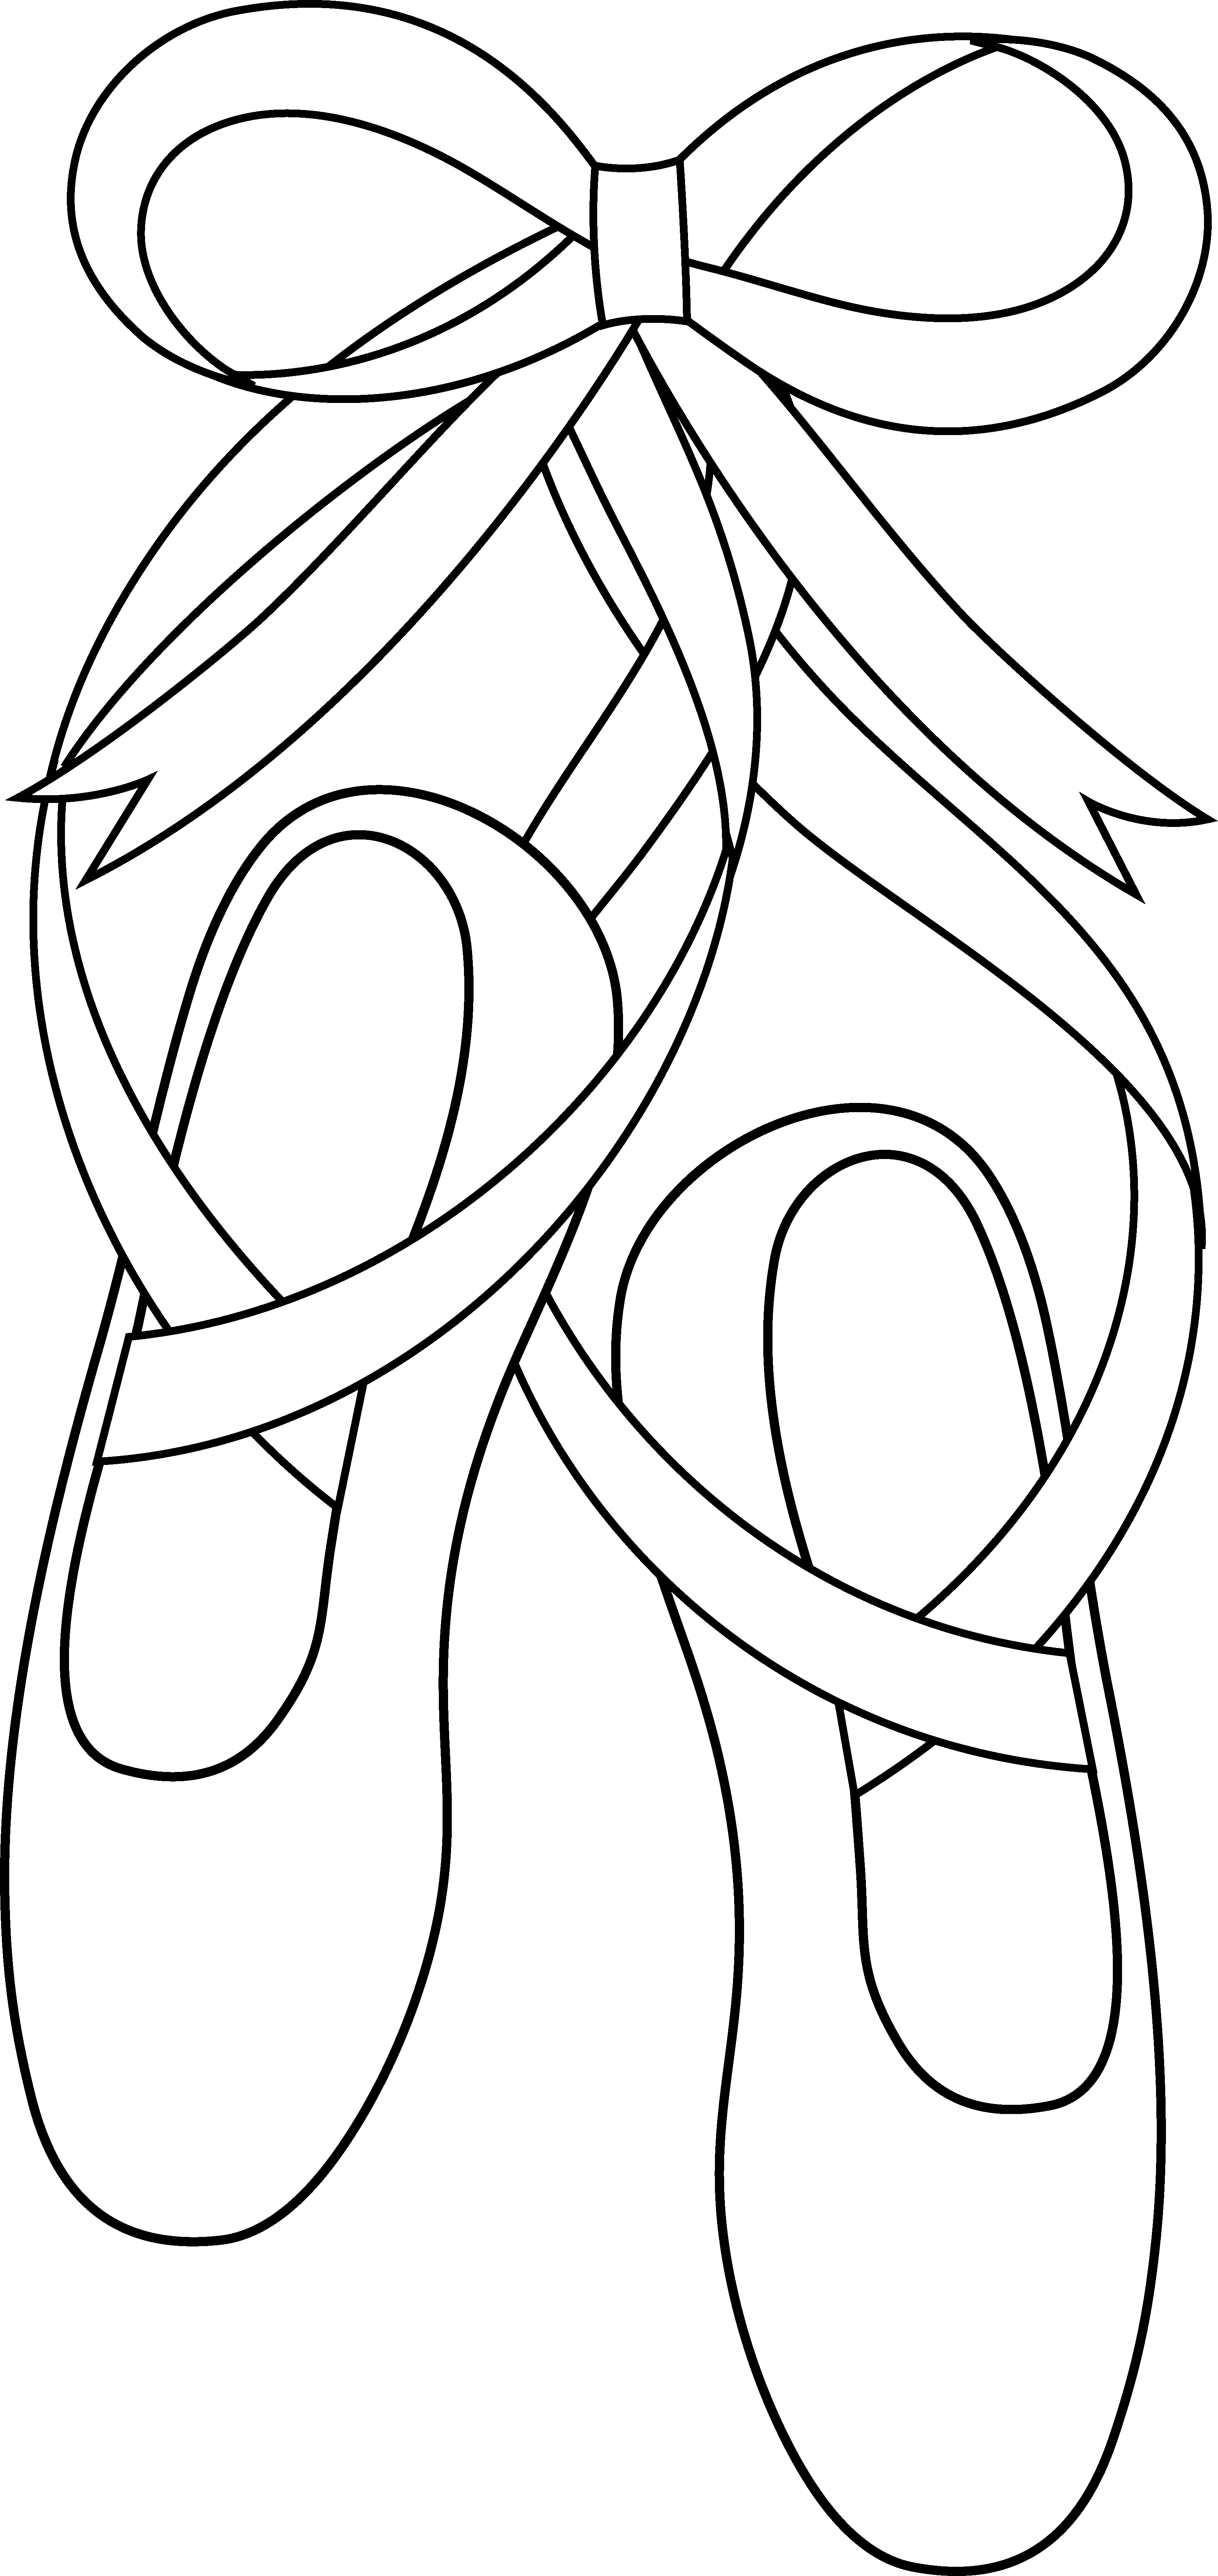 Dance Shoes Drawing At Free For Personal Use Pin Tango Steps Diagram On Pinterest 3300x6981 Cartoon Ballet